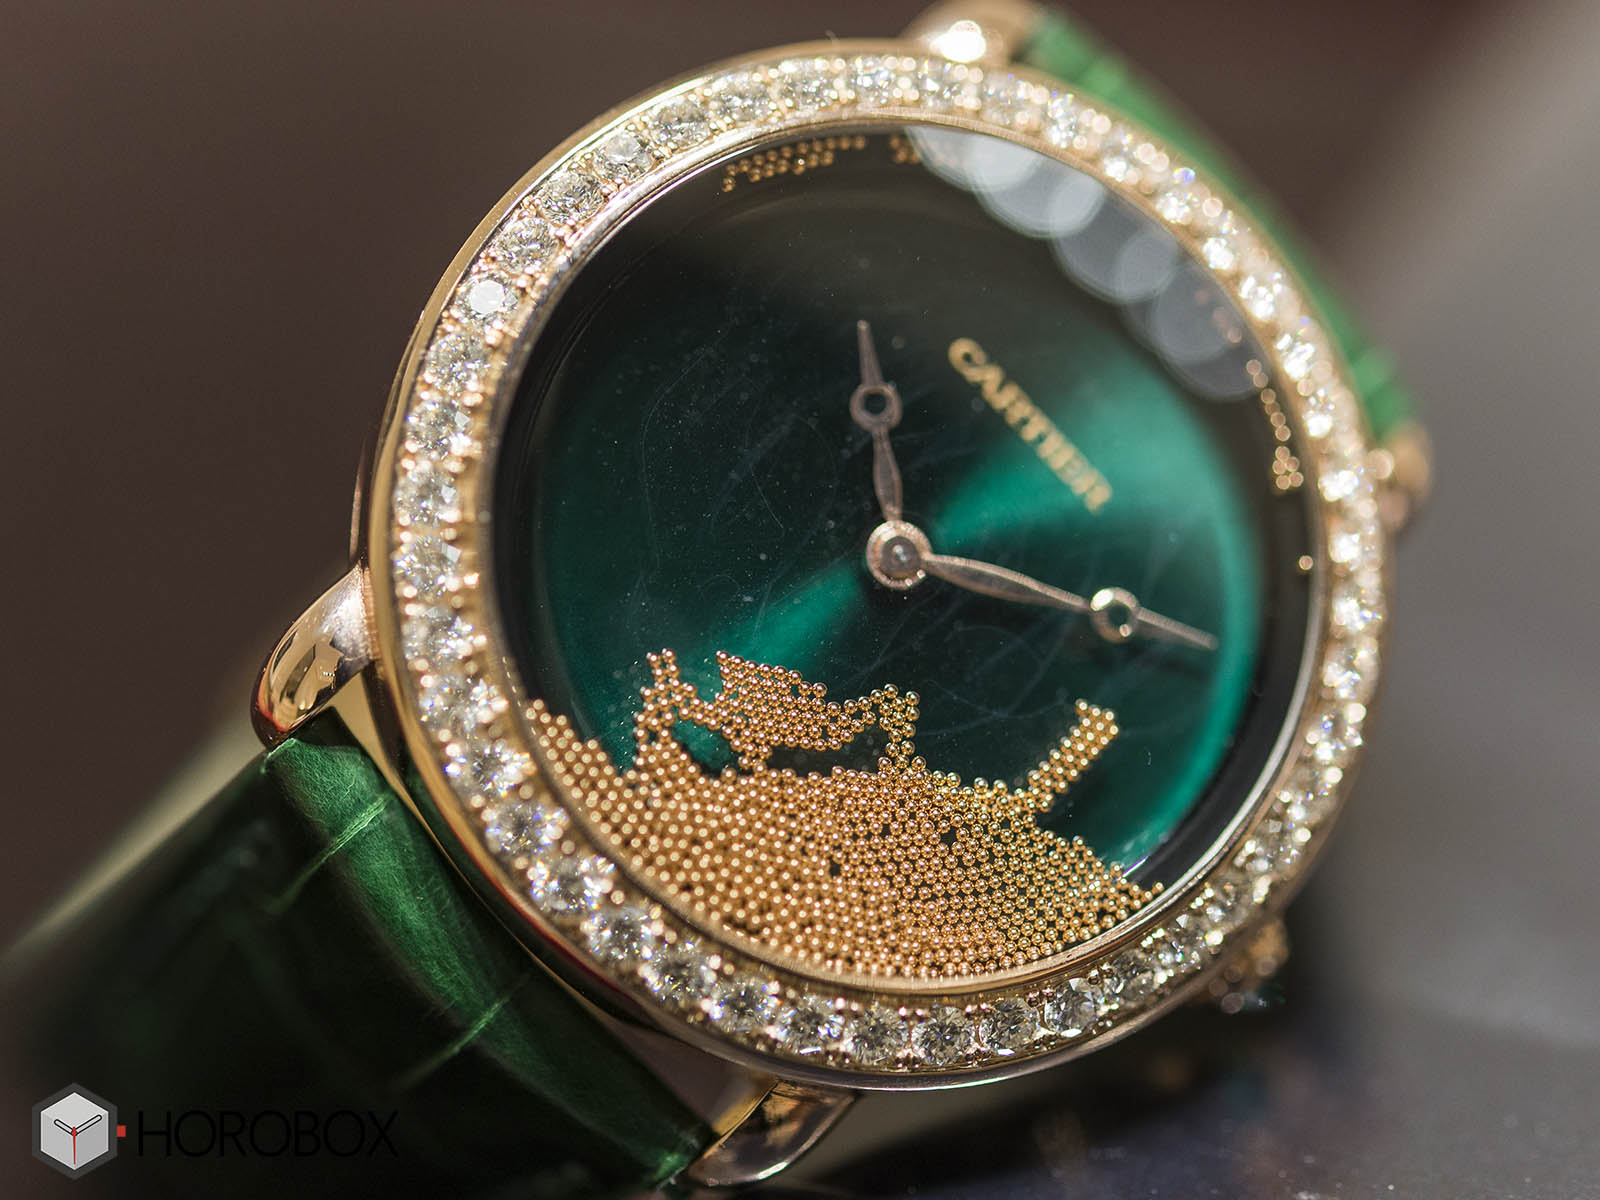 HP-01261-Cartier-Revelation-D-une-Panthere-Sihh-2018-2.jpg